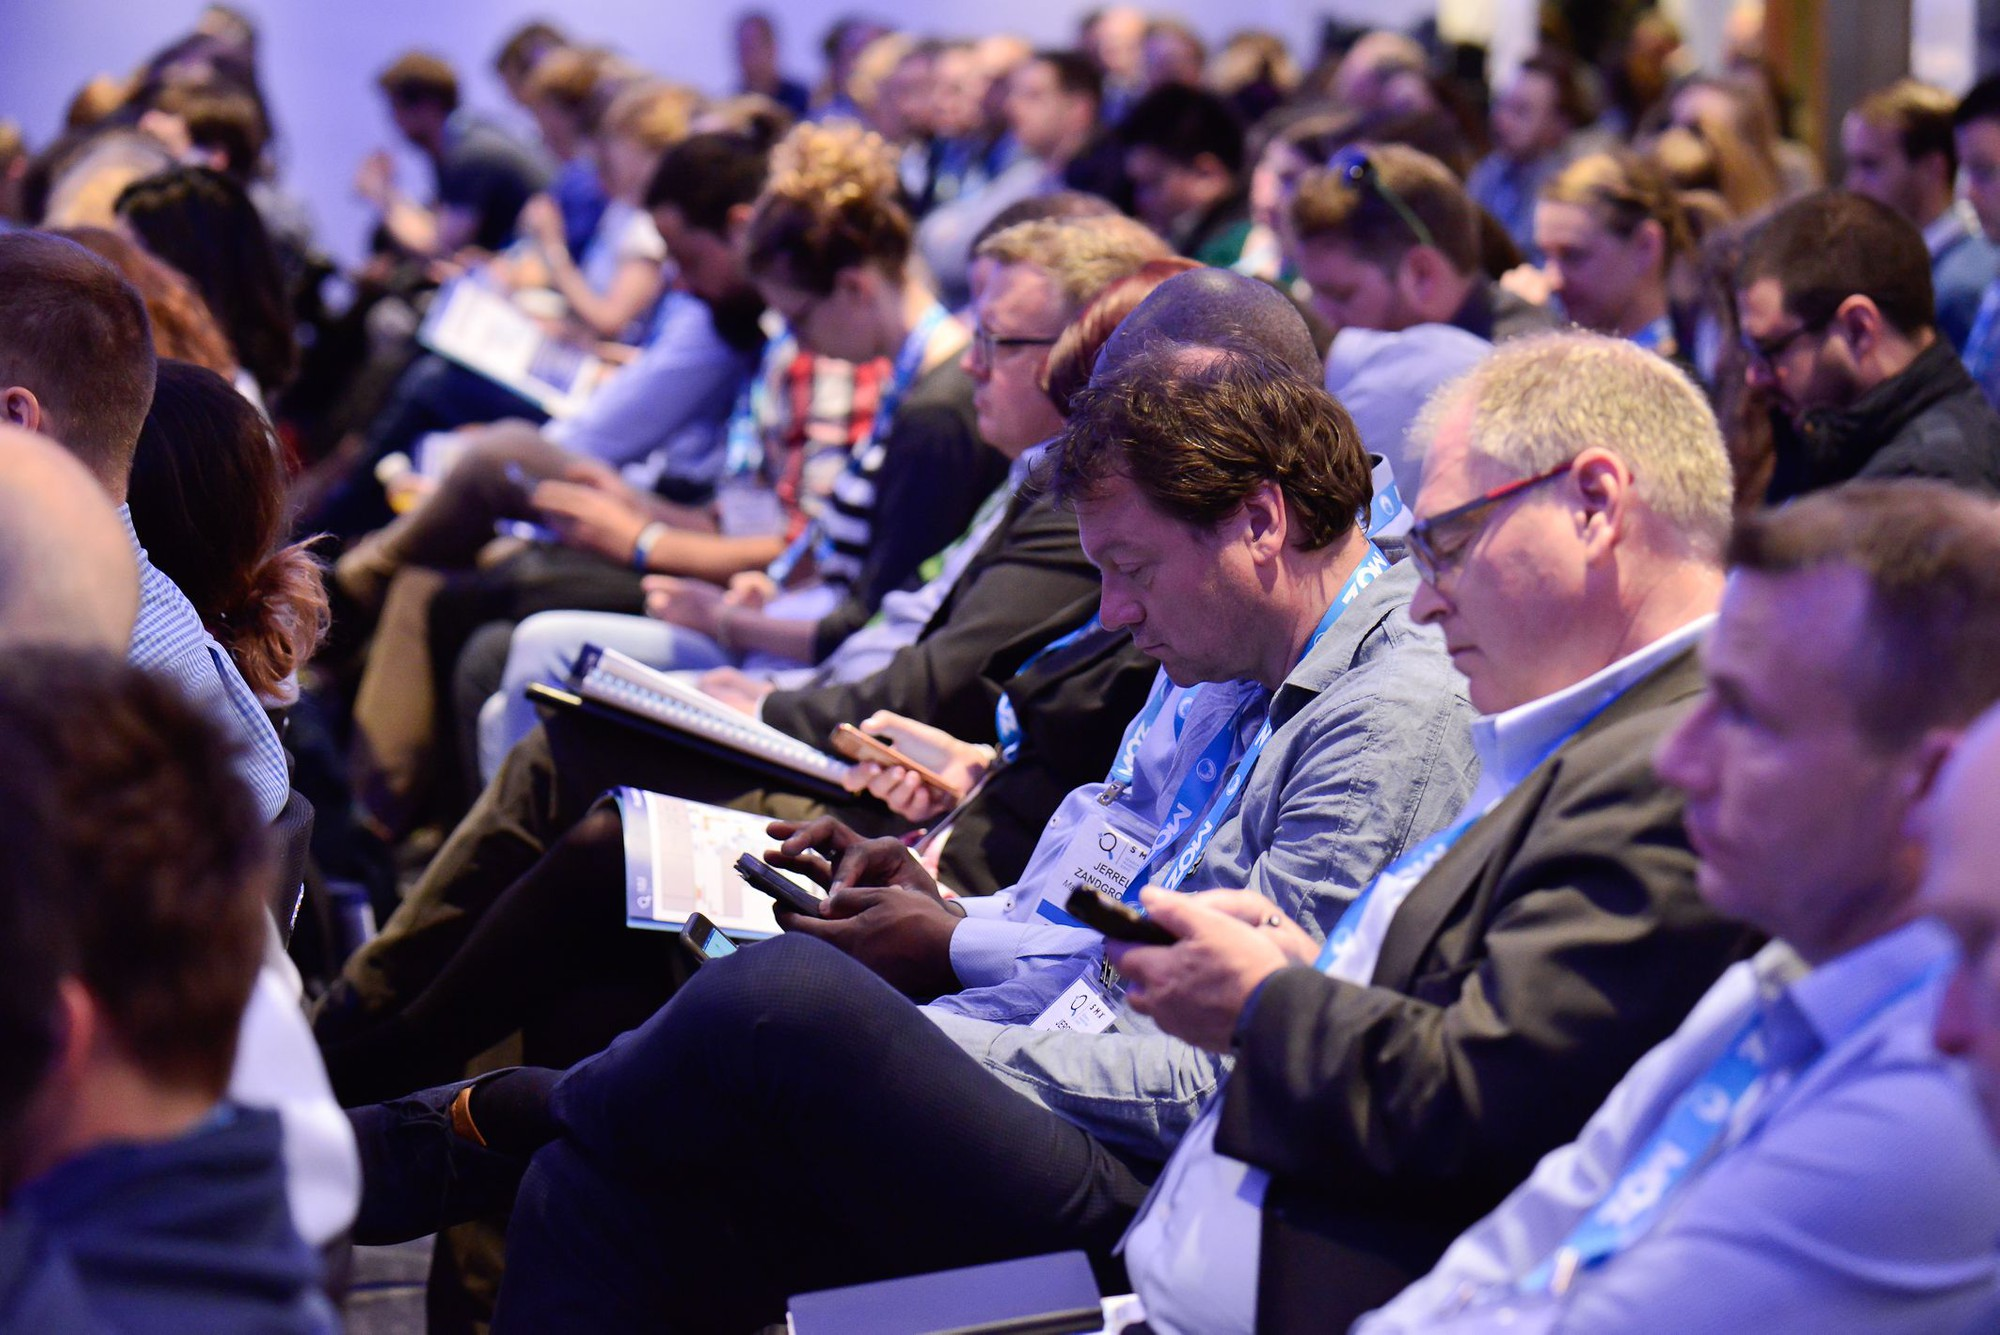 SMX London: The Search Marketing Event That Should be in Your Calendar